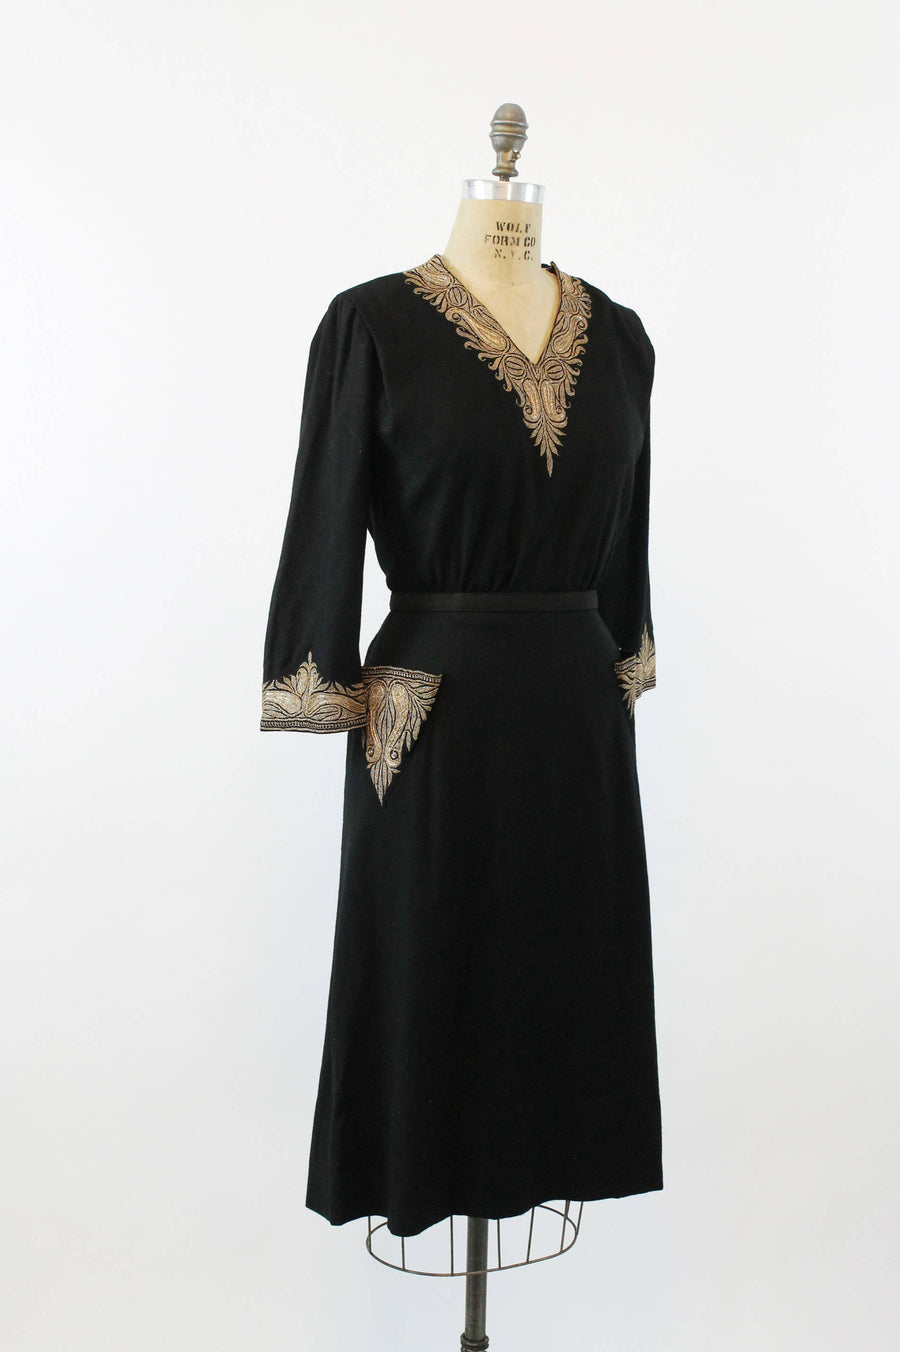 1930s gold embroidered dress and cape medium | vintage wool dress and matching jacket